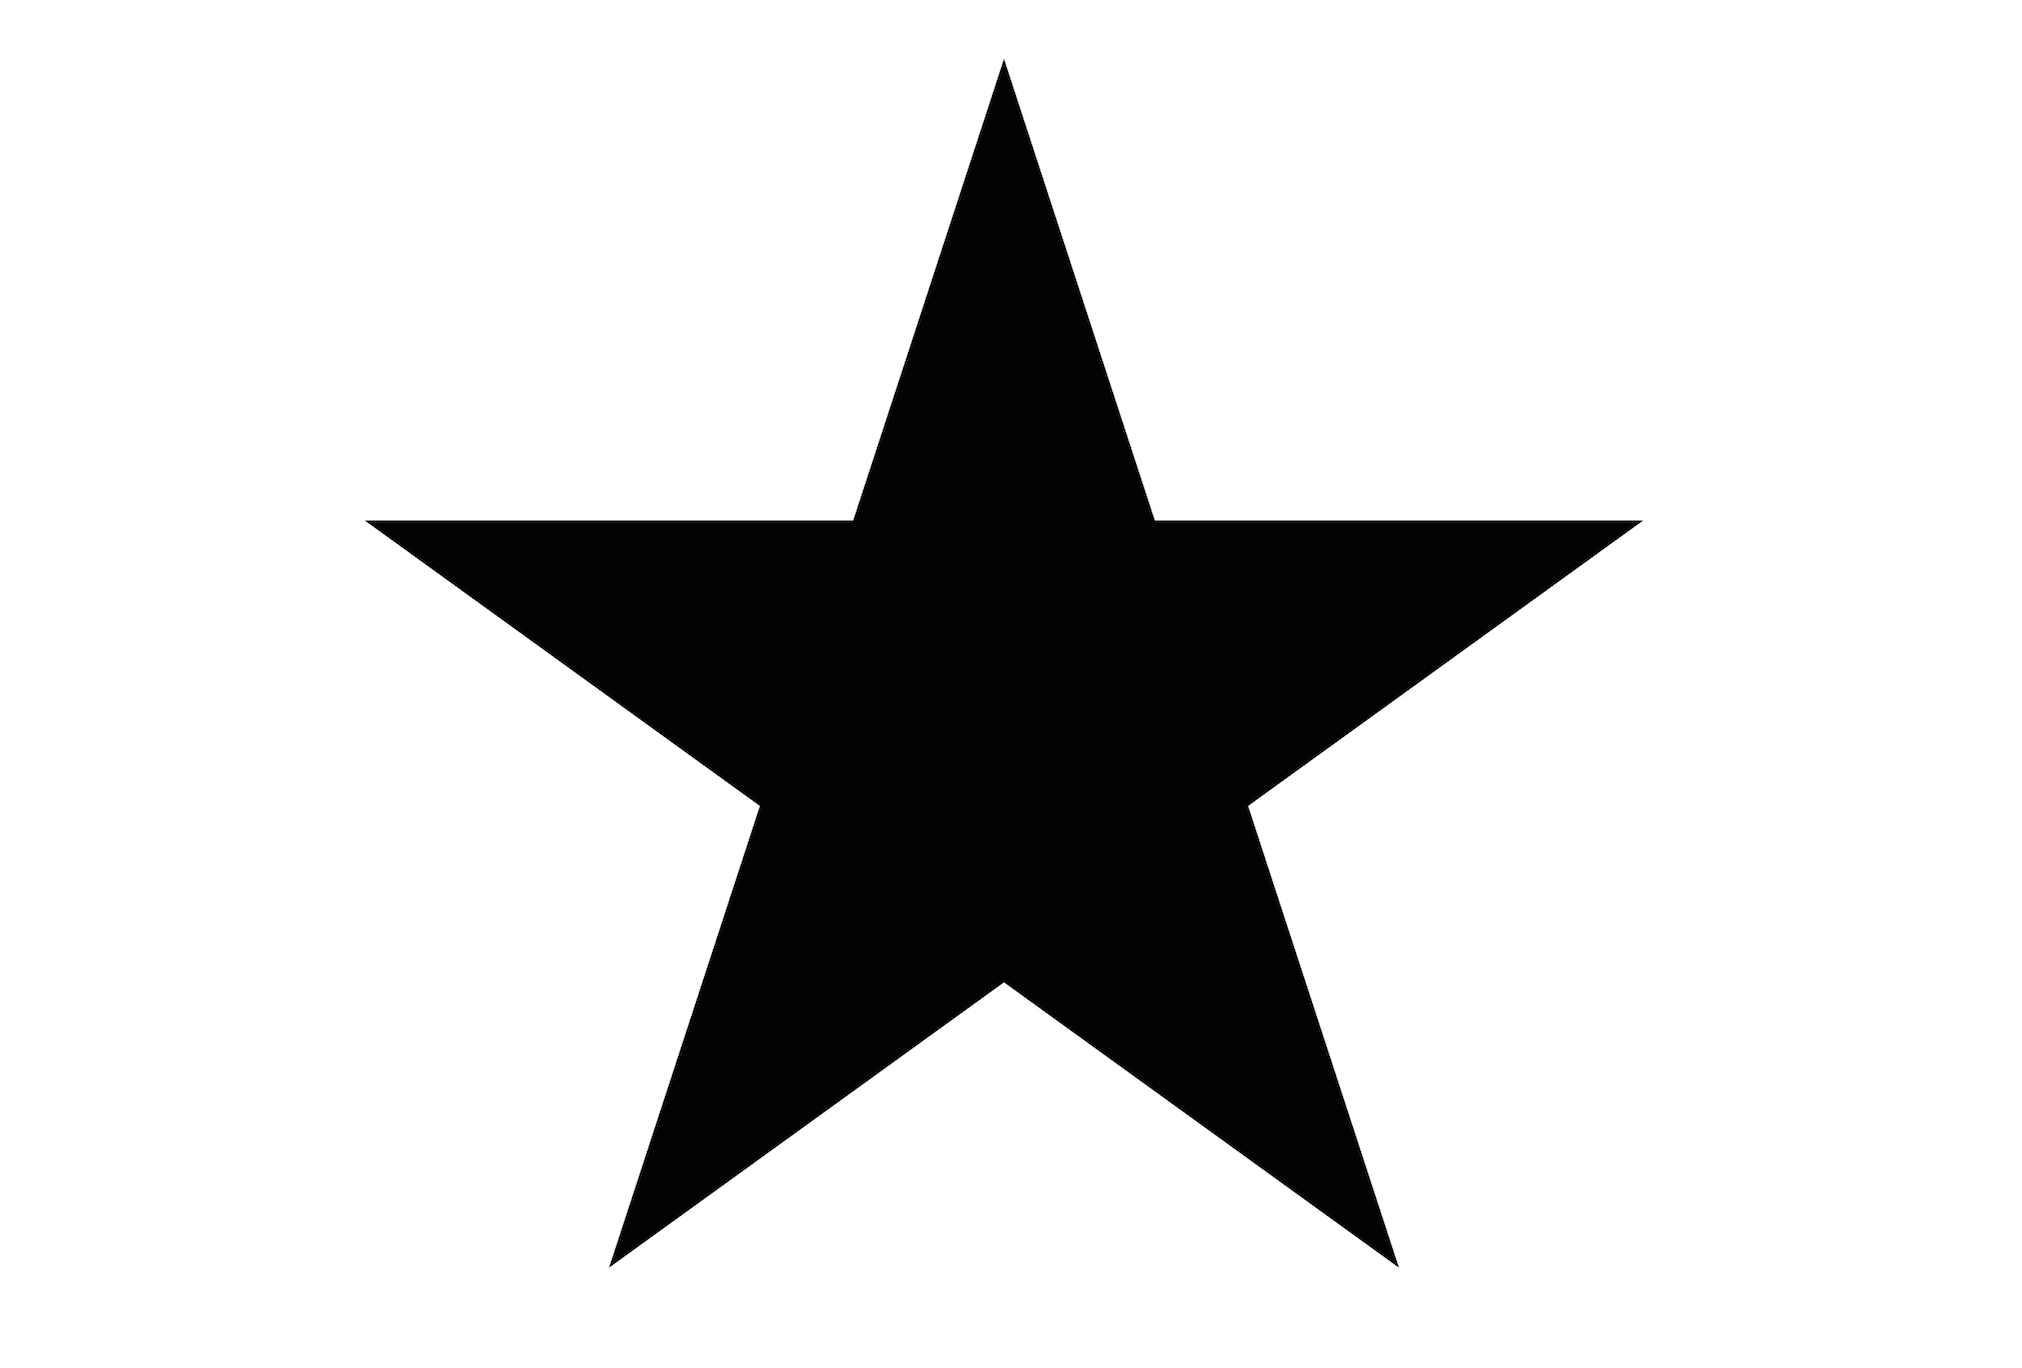 the art from david bowie 39 s final album blackstar is now free for fans to download and reuse. Black Bedroom Furniture Sets. Home Design Ideas